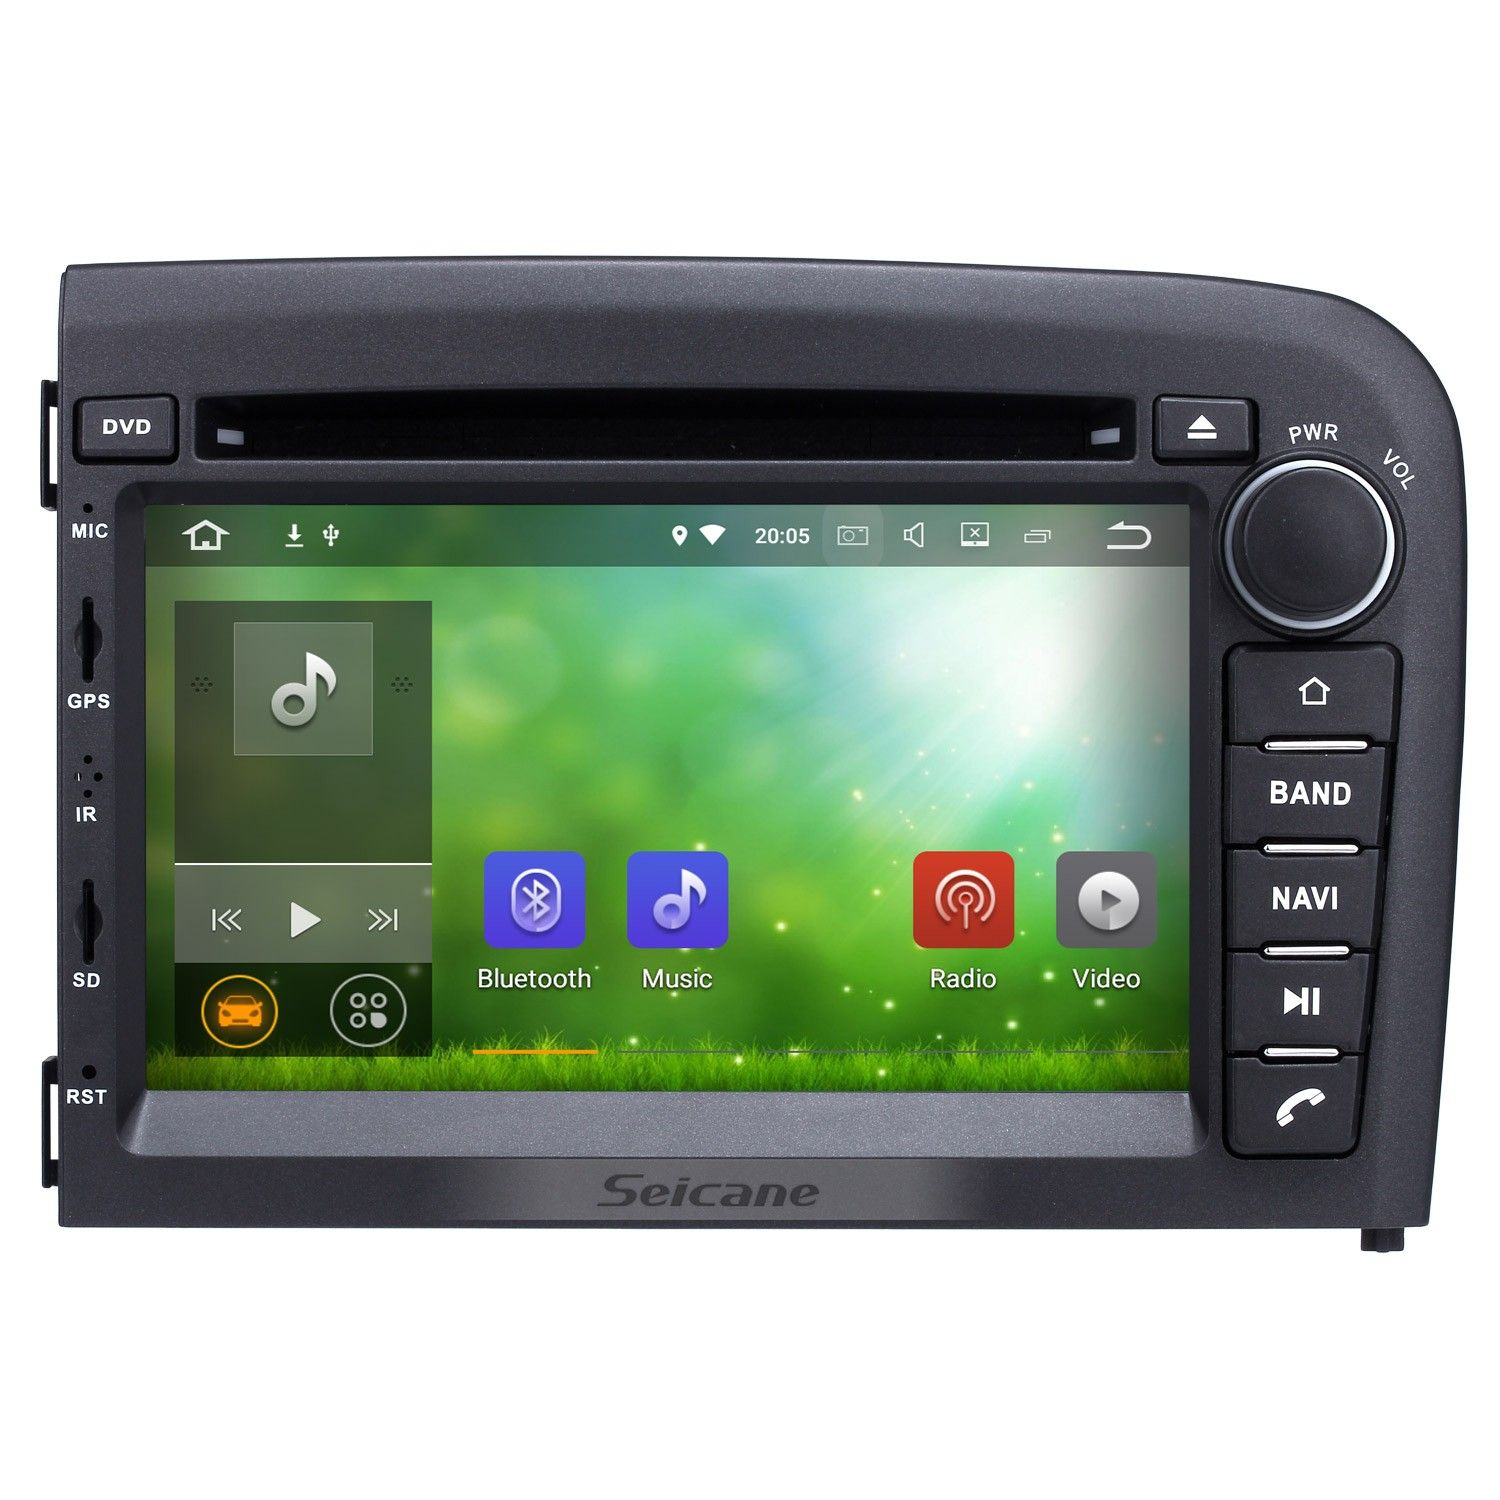 Krando Android 7 1 Car Radio Dvd Multimedia For Volvo S60: Seicane Android 7.1 GPS Navigation Car Stereo Audio System